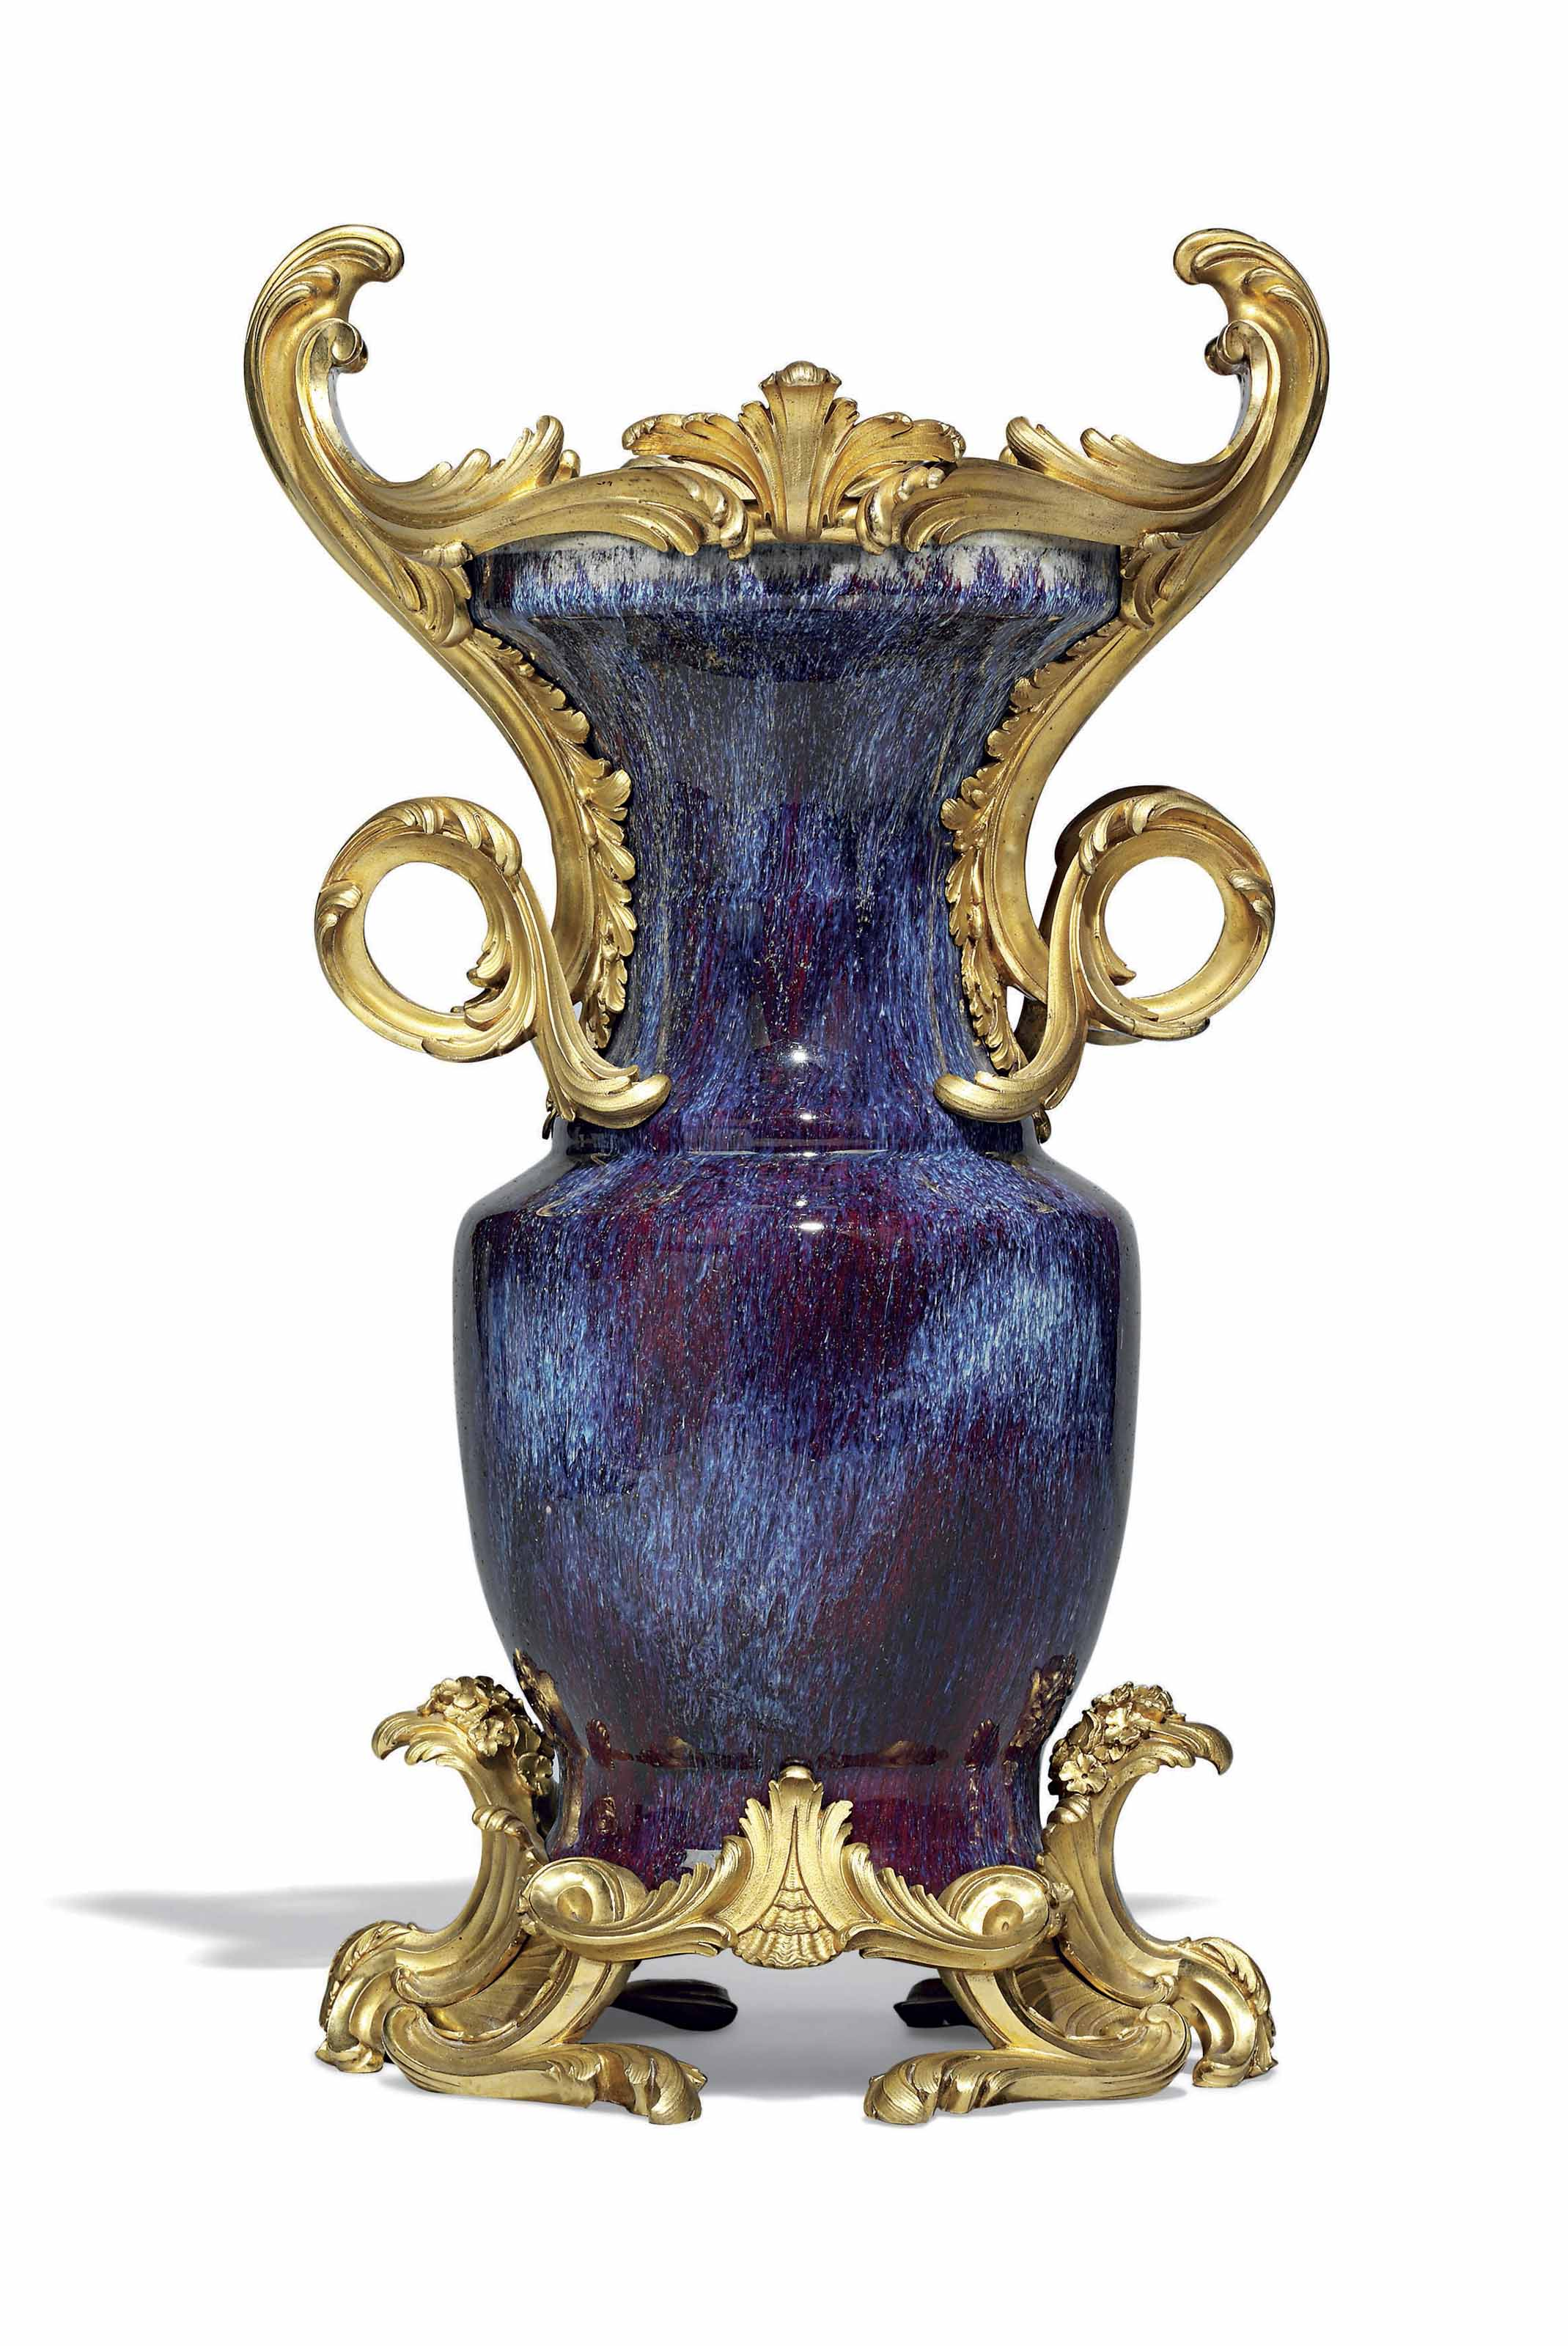 A LOUIS XV ORMOLU-MOUNTED CHINESE FLAMBE-GLAZED PORCELAIN VASE